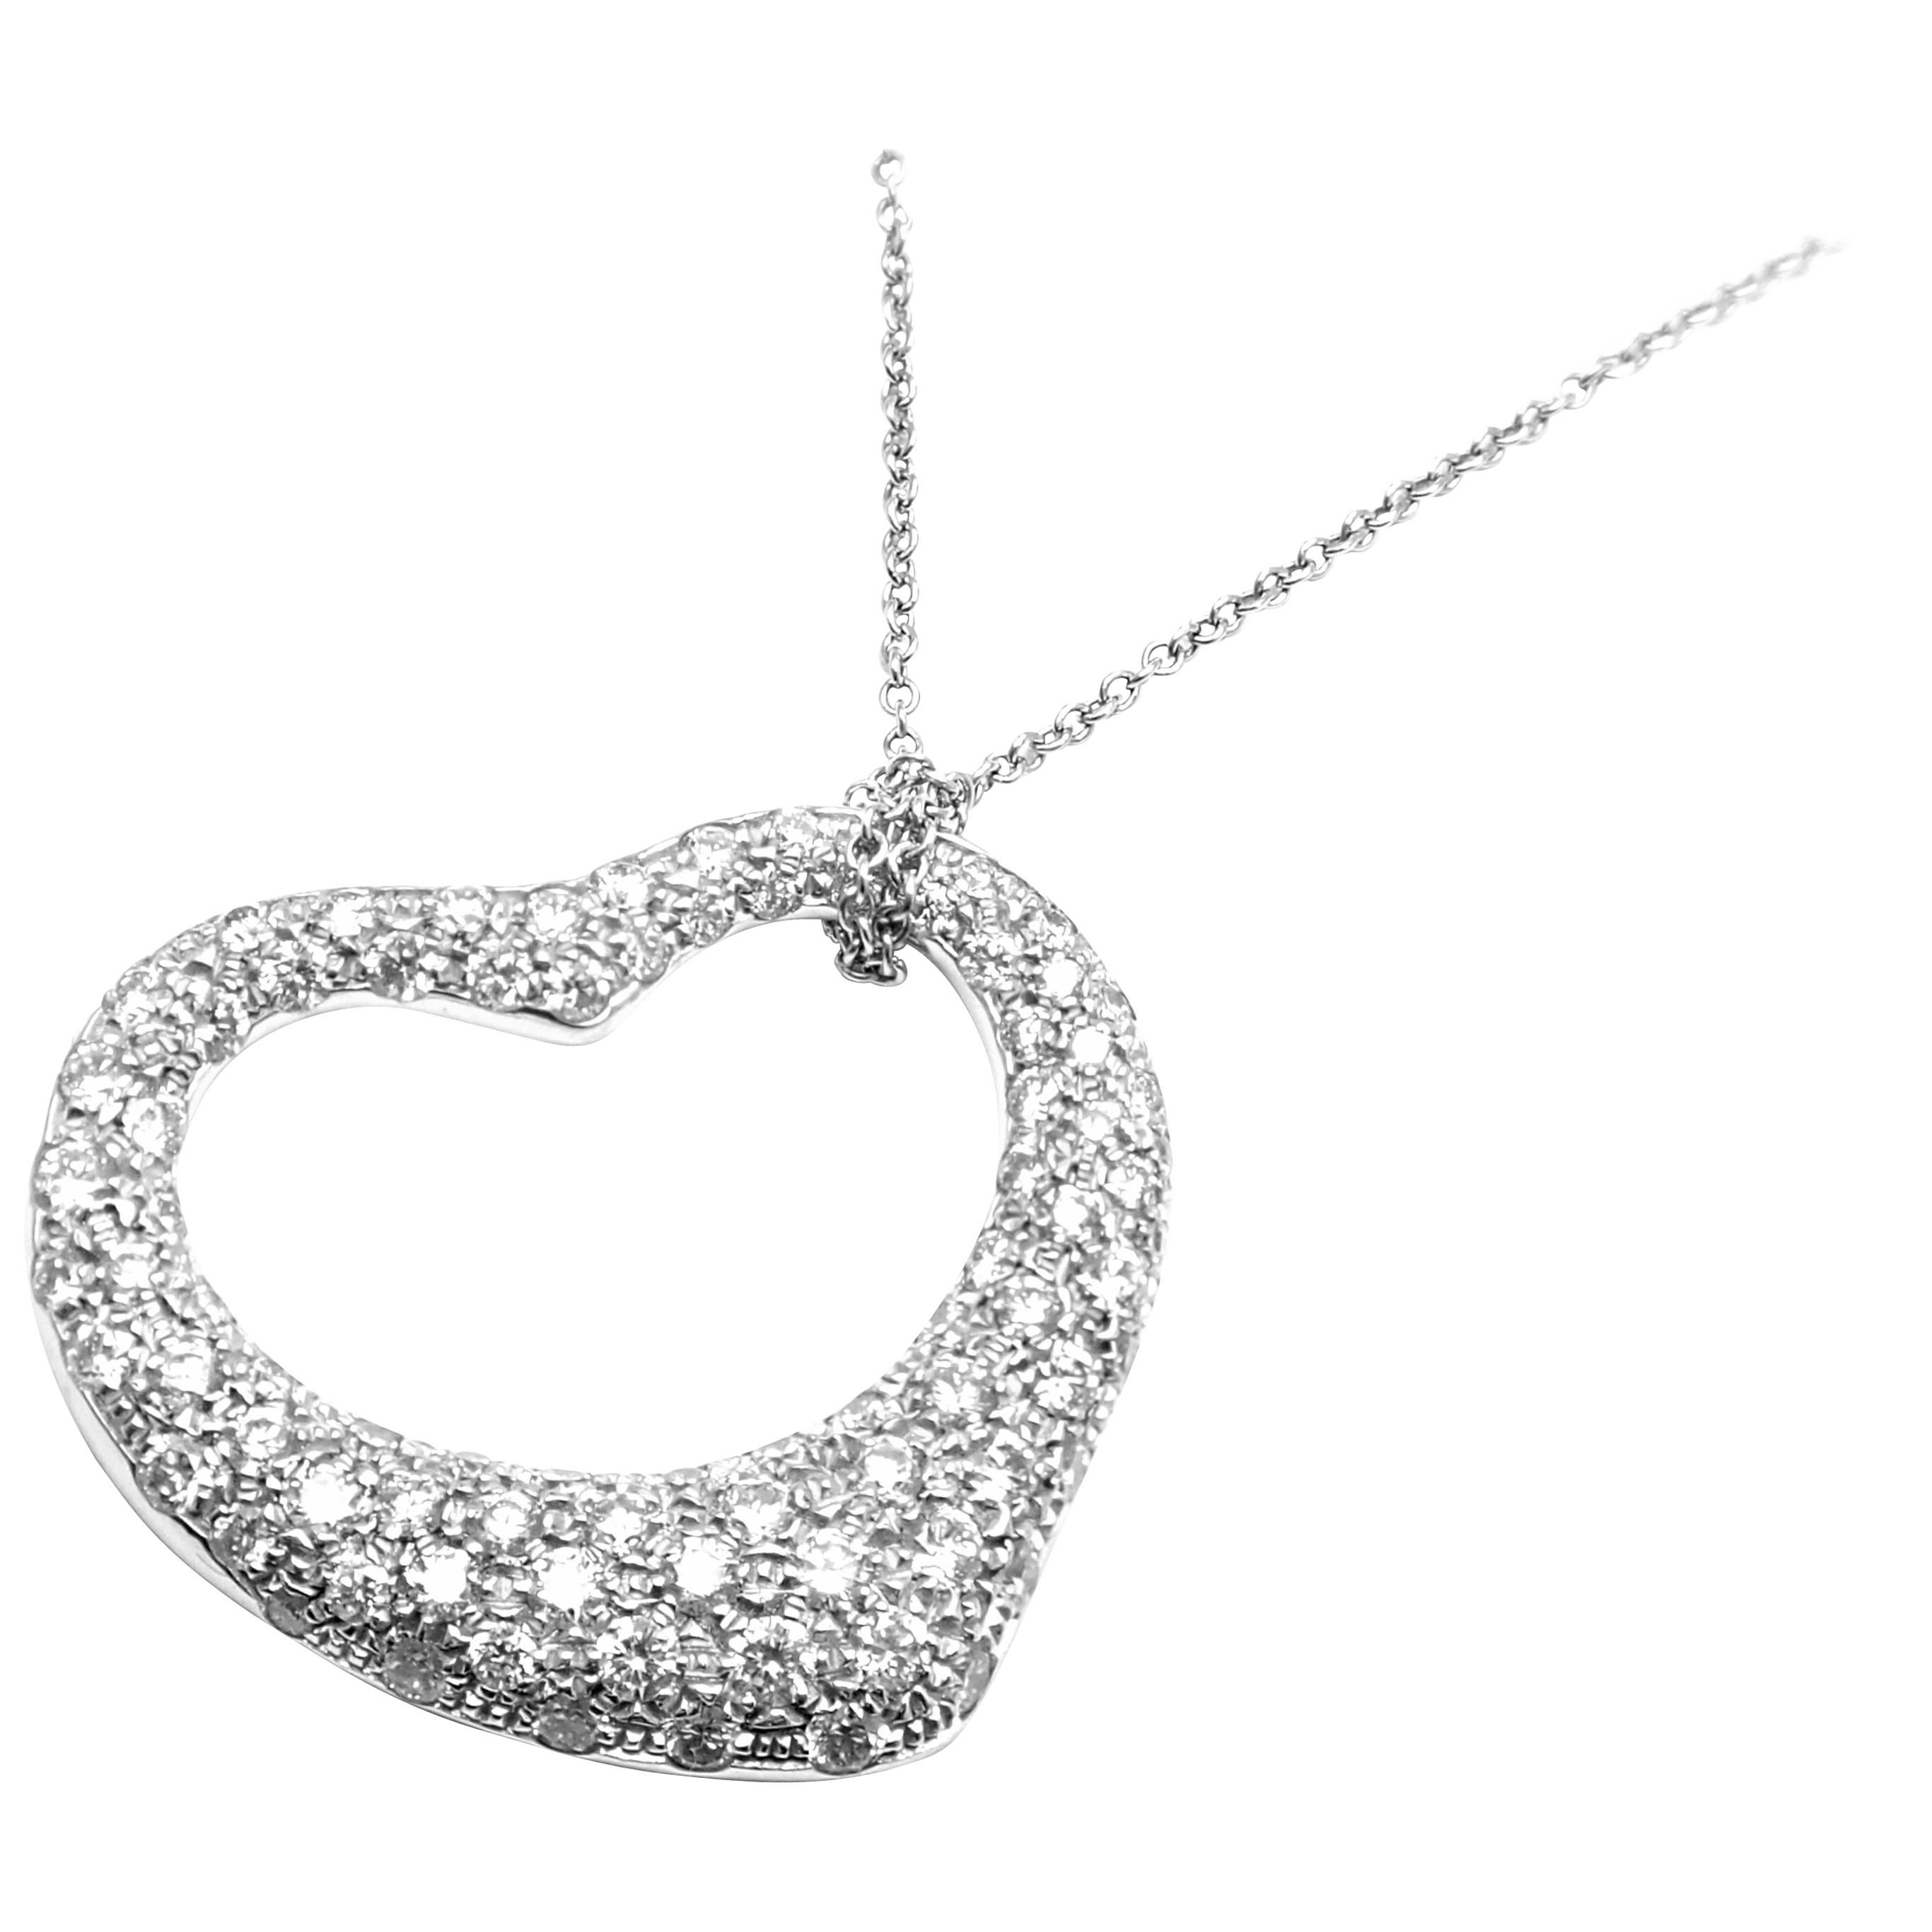 Tiffany & Co. Elsa Peretti Platinum Diamond Open Heart Large Pendant Necklace